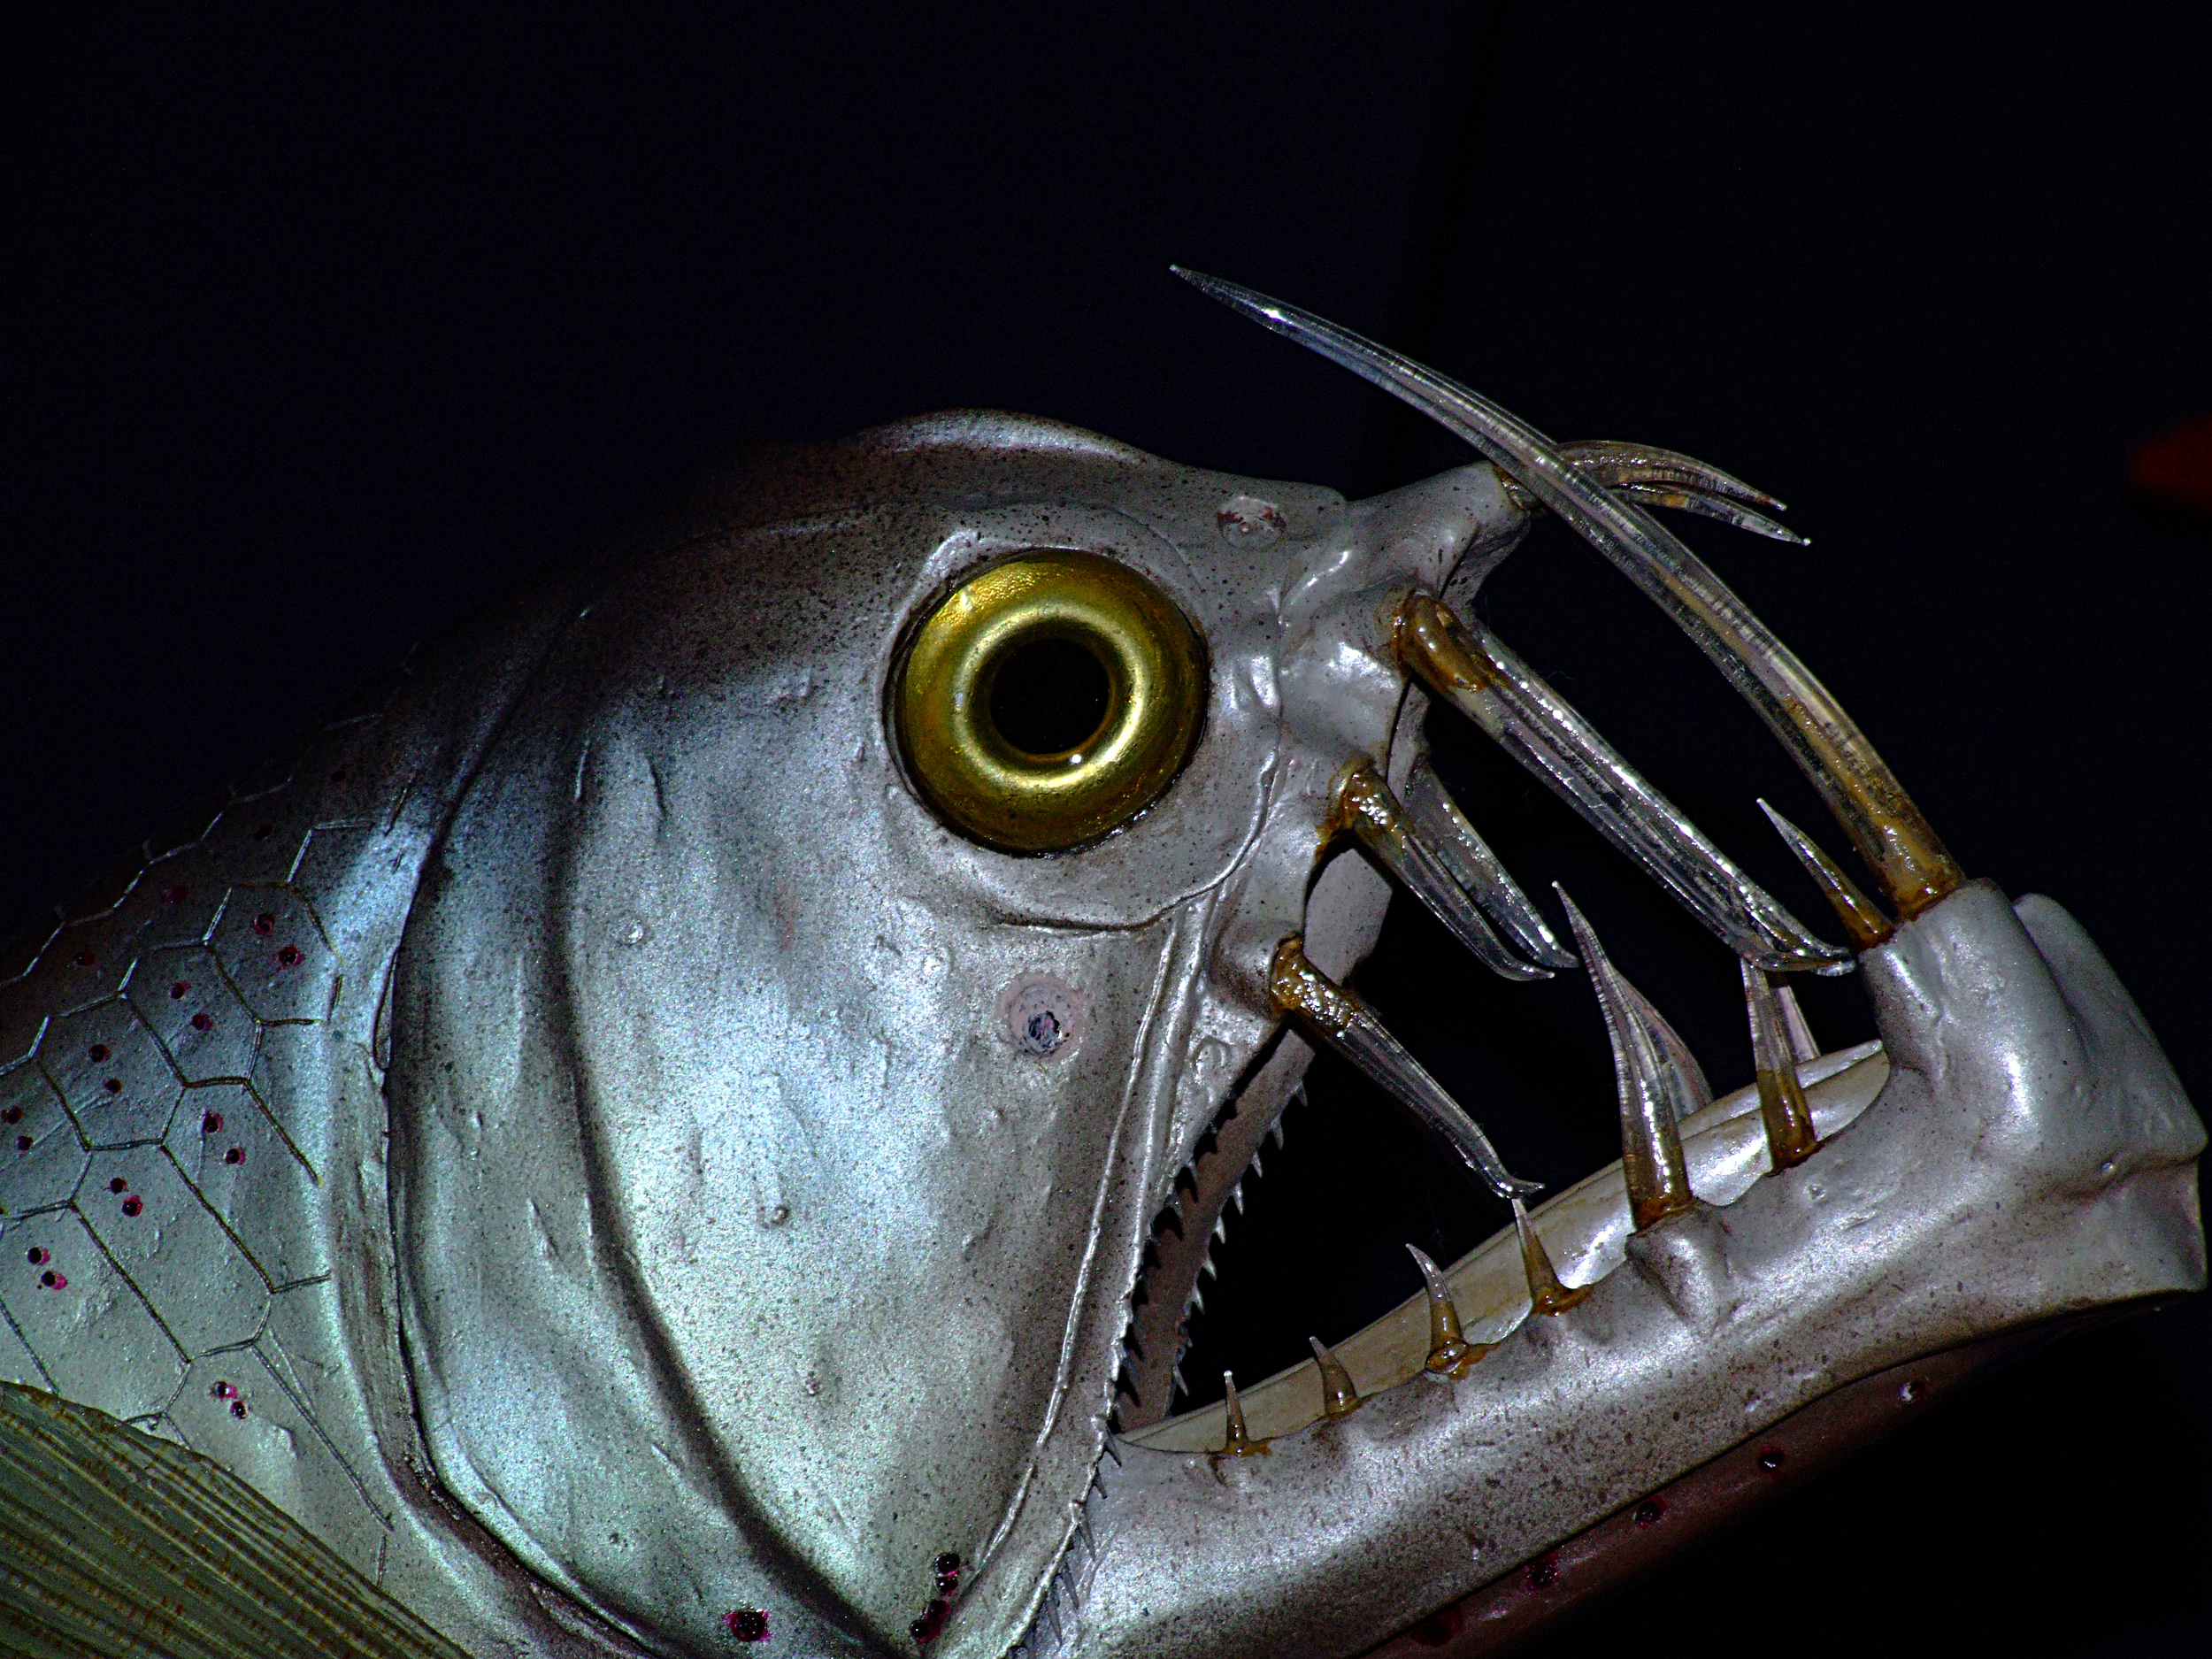 You'll need big eyes, big teeth, and a big mouth to survive in the deep! Photo: FreeImage.com/GavinMills